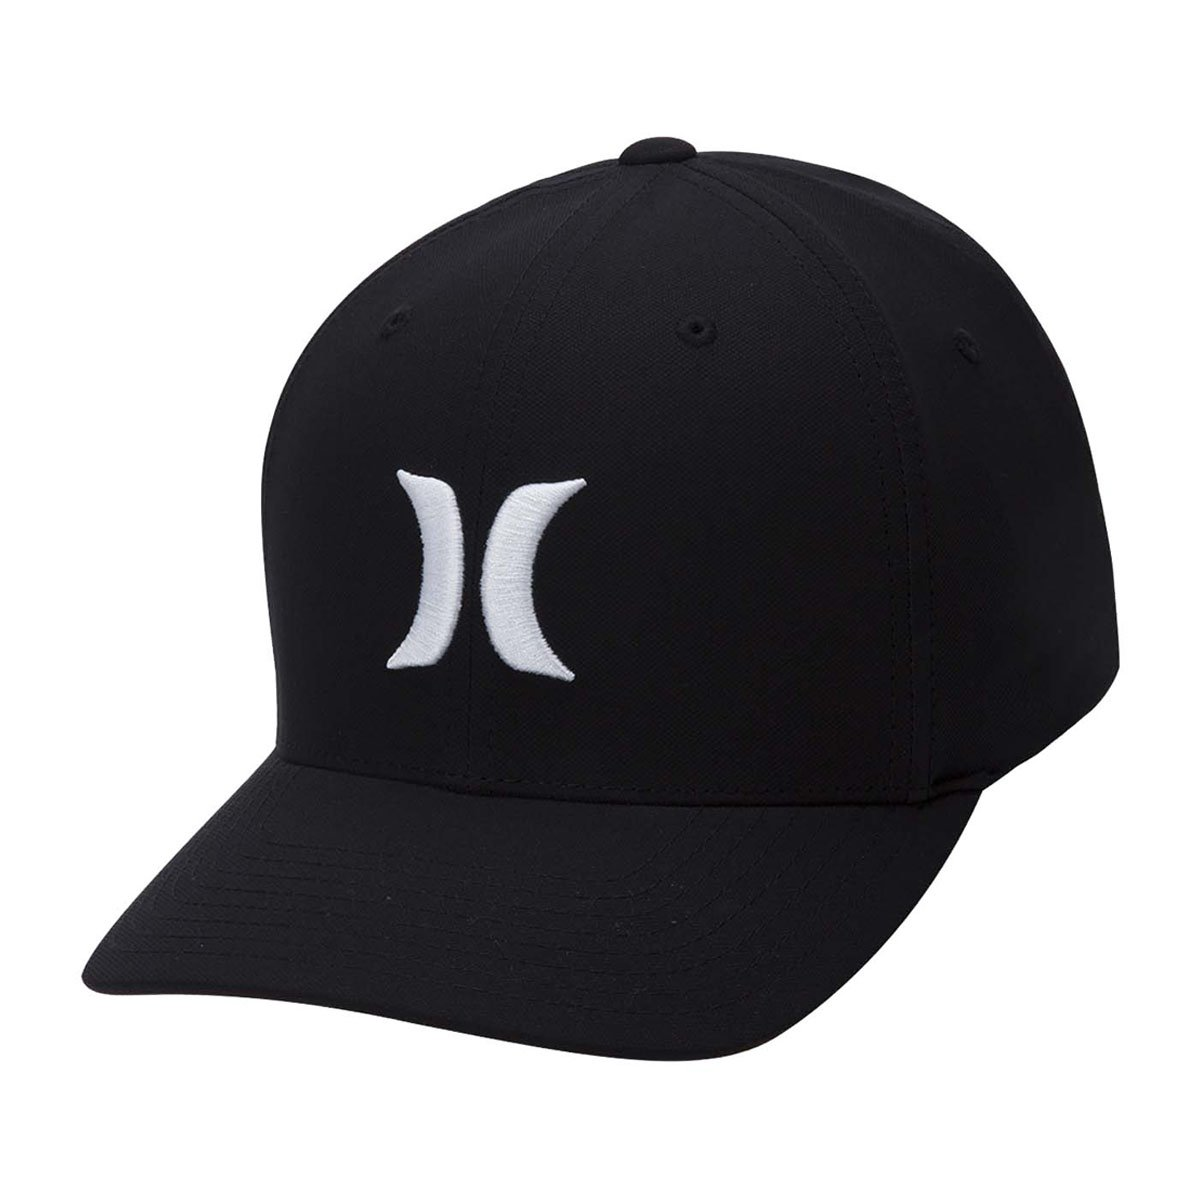 DRI-FIT ONE&ONLY 2.0 HAT